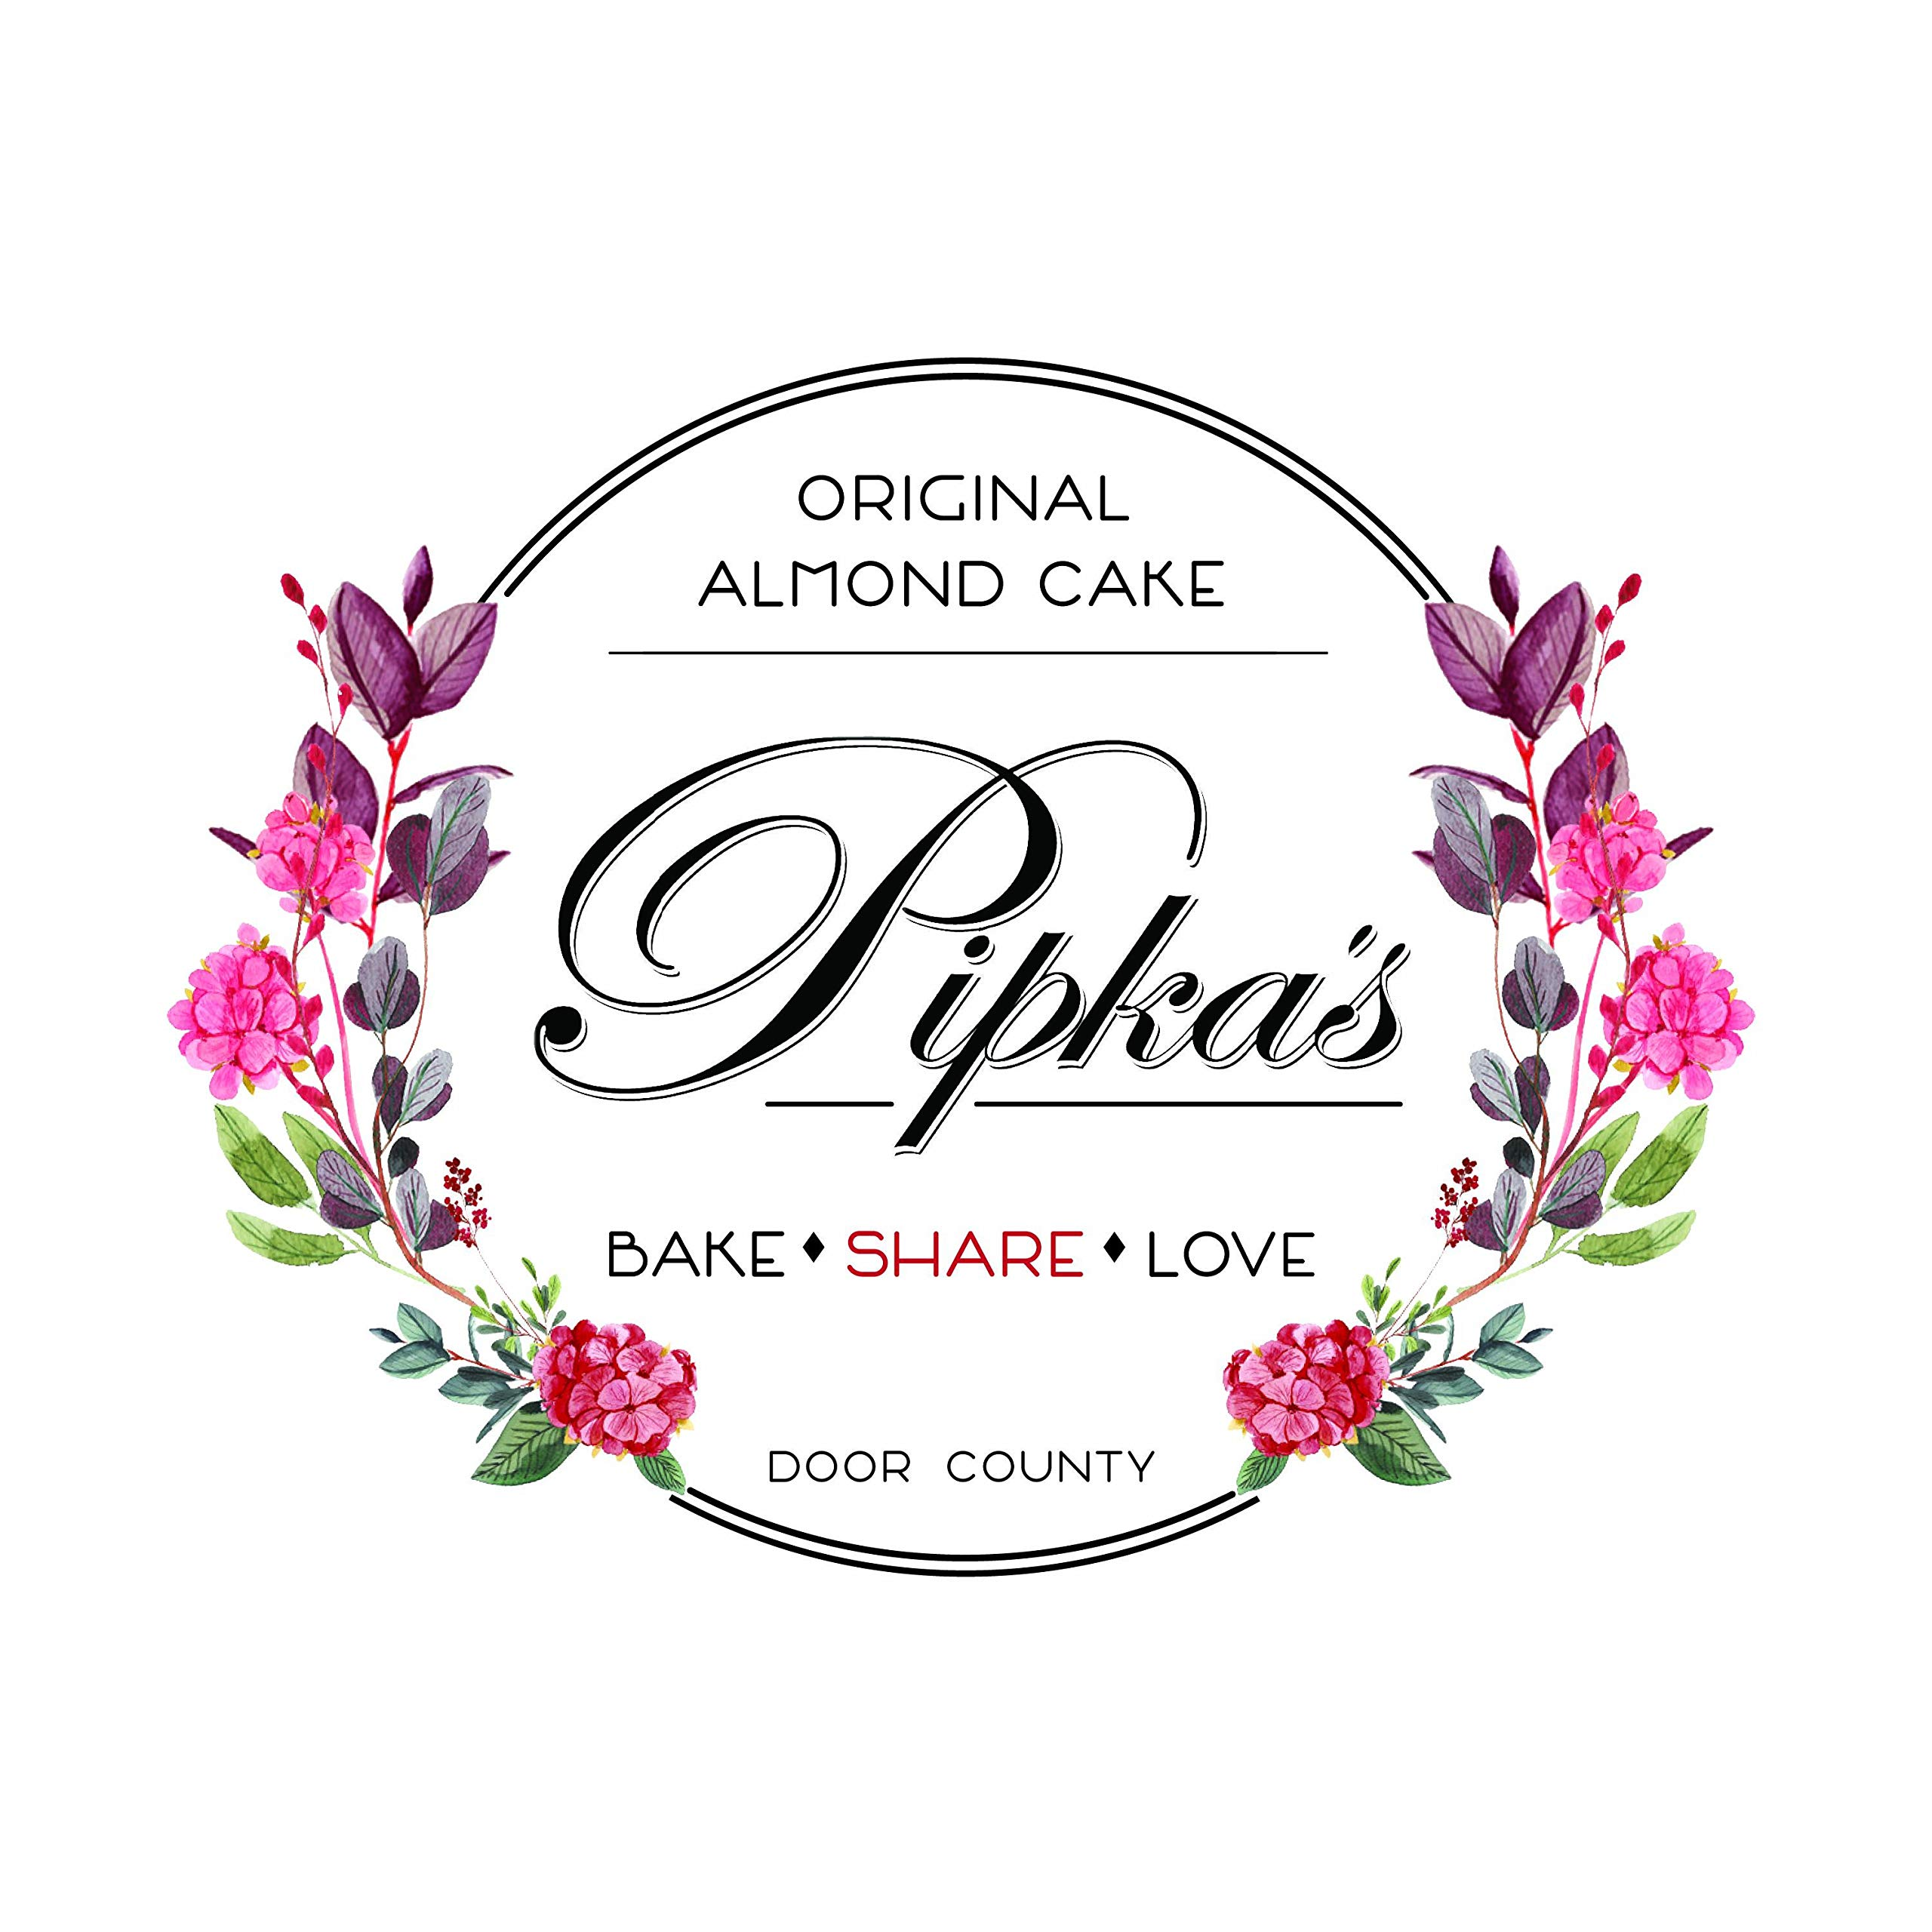 Pipka's Almond Cake Pan. ONE pan and ONE original recipe with over 40 variations. EASY release, non-stick PFOA FREE finish makes baking Pipka's Original Almond Cake easy. FREE recipe booklet.